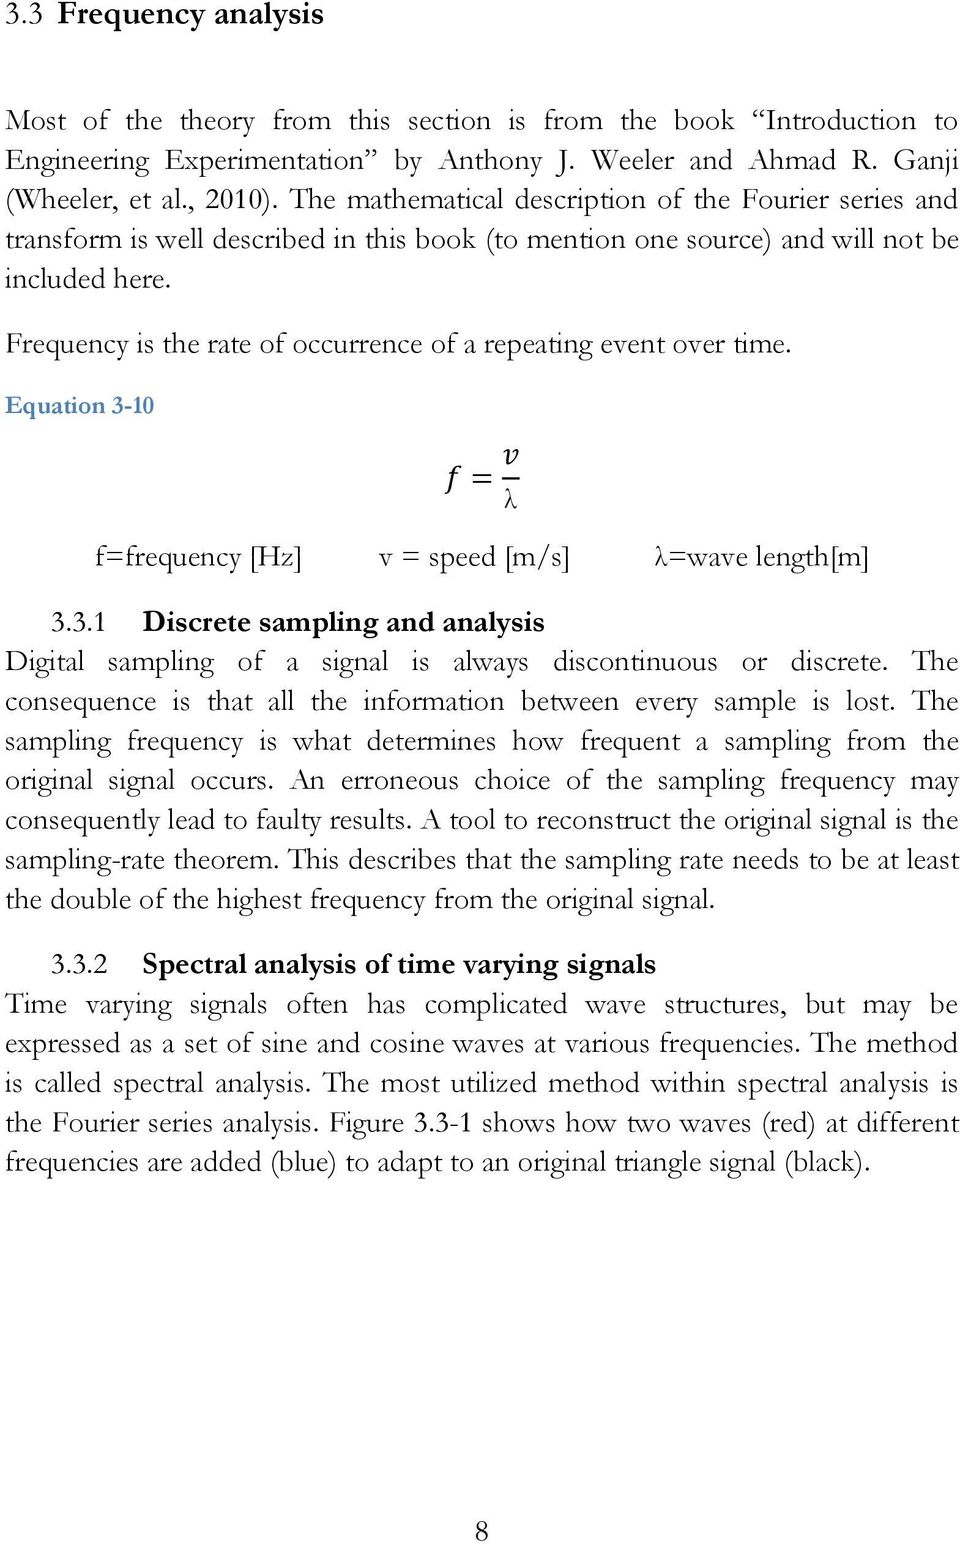 Frequency is the rate of occurrence of a repeating event over time. Equation 3-10 f=frequency [Hz] v = speed [m/s] λ=wave length[m] 3.3.1 Discrete sampling and analysis Digital sampling of a signal is always discontinuous or discrete.